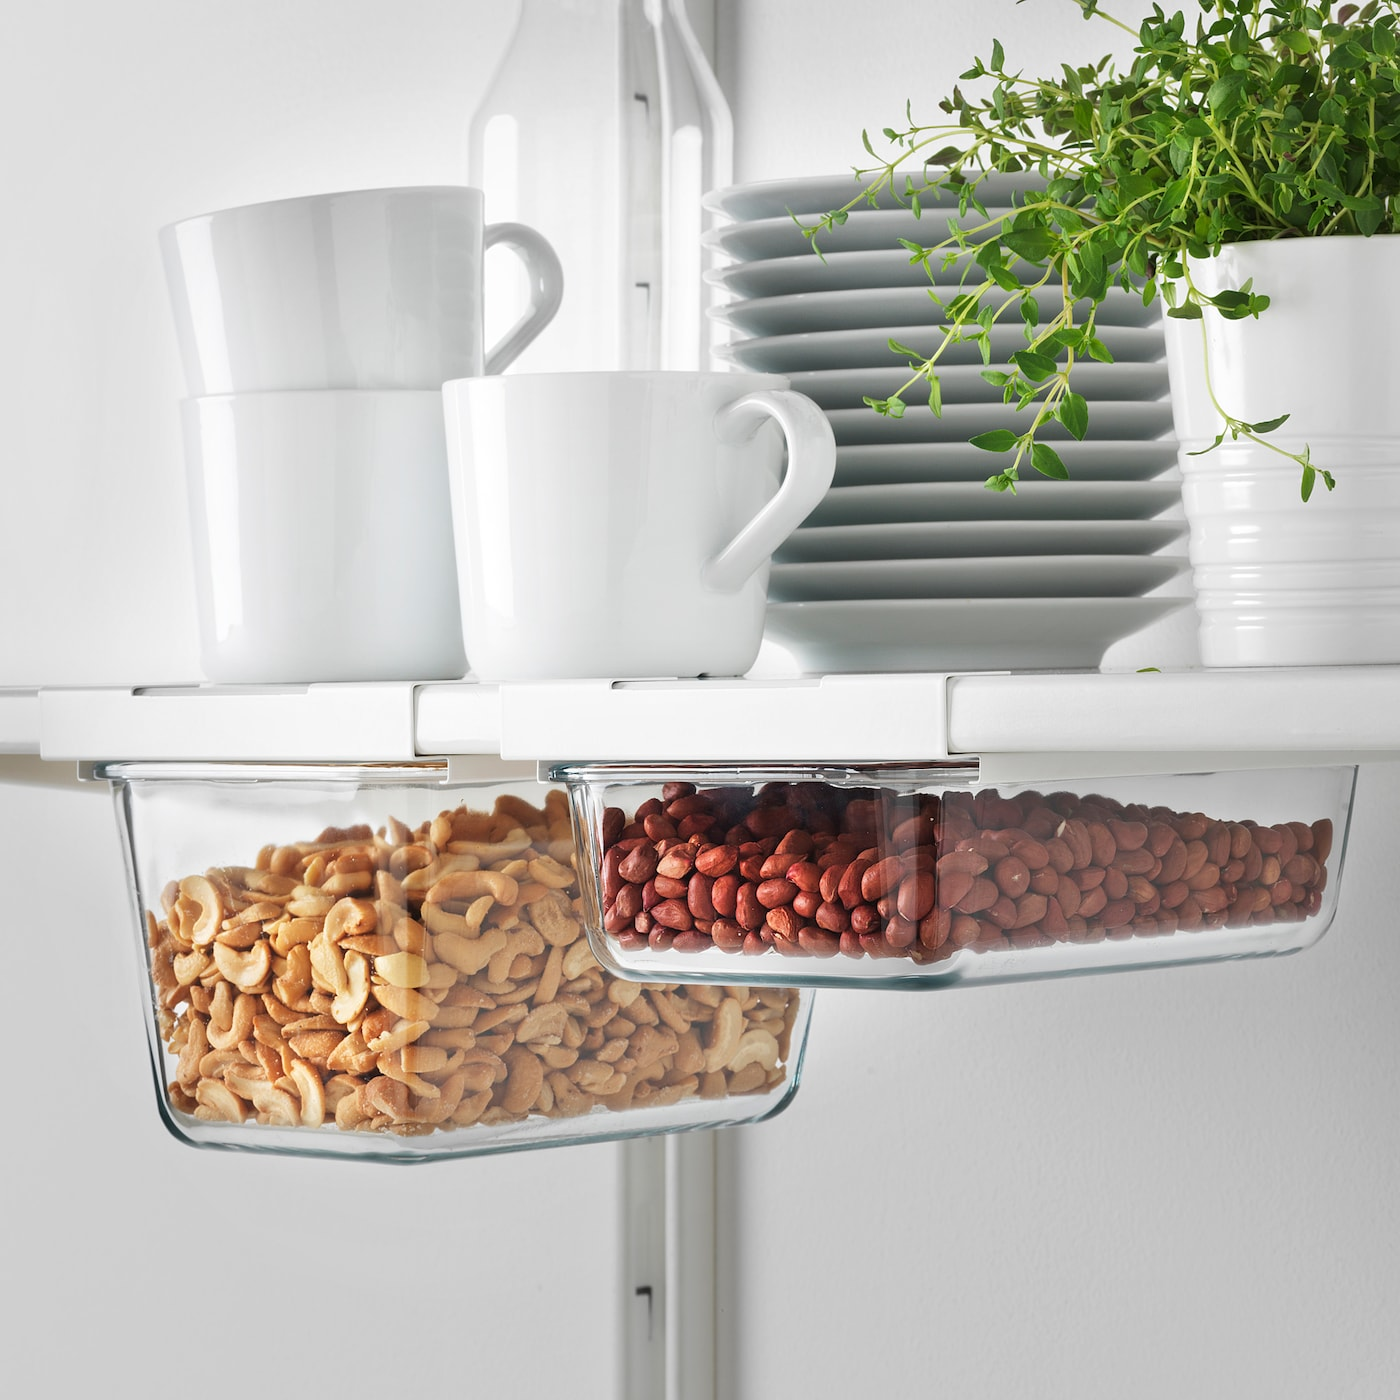 IKEA 365+ white, Holder for container